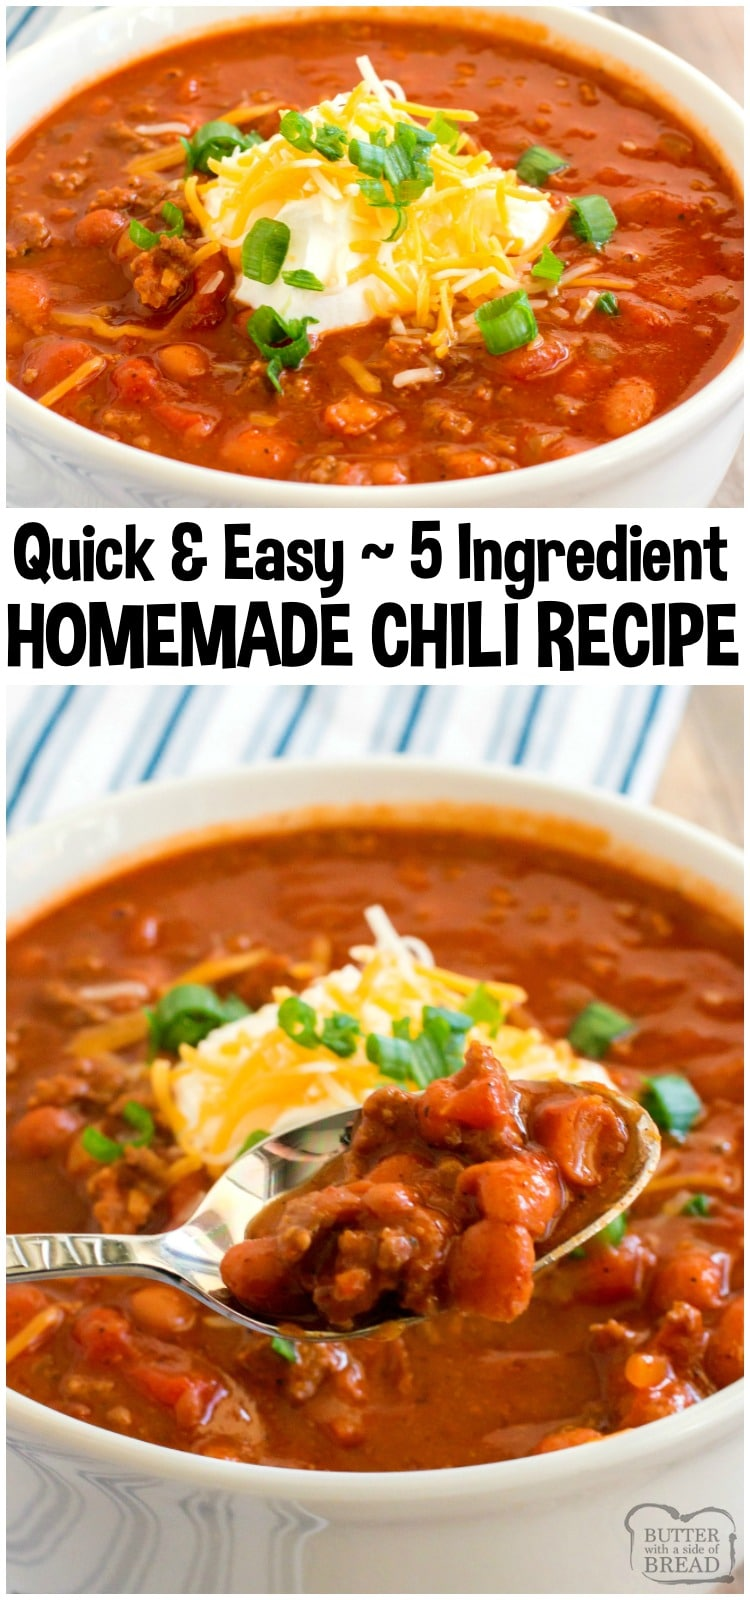 Easy Chili Recipe made in under an hour with just 5 ingredients! Simple & flavorful ground beef chili recipethat's perfect for family dinner.